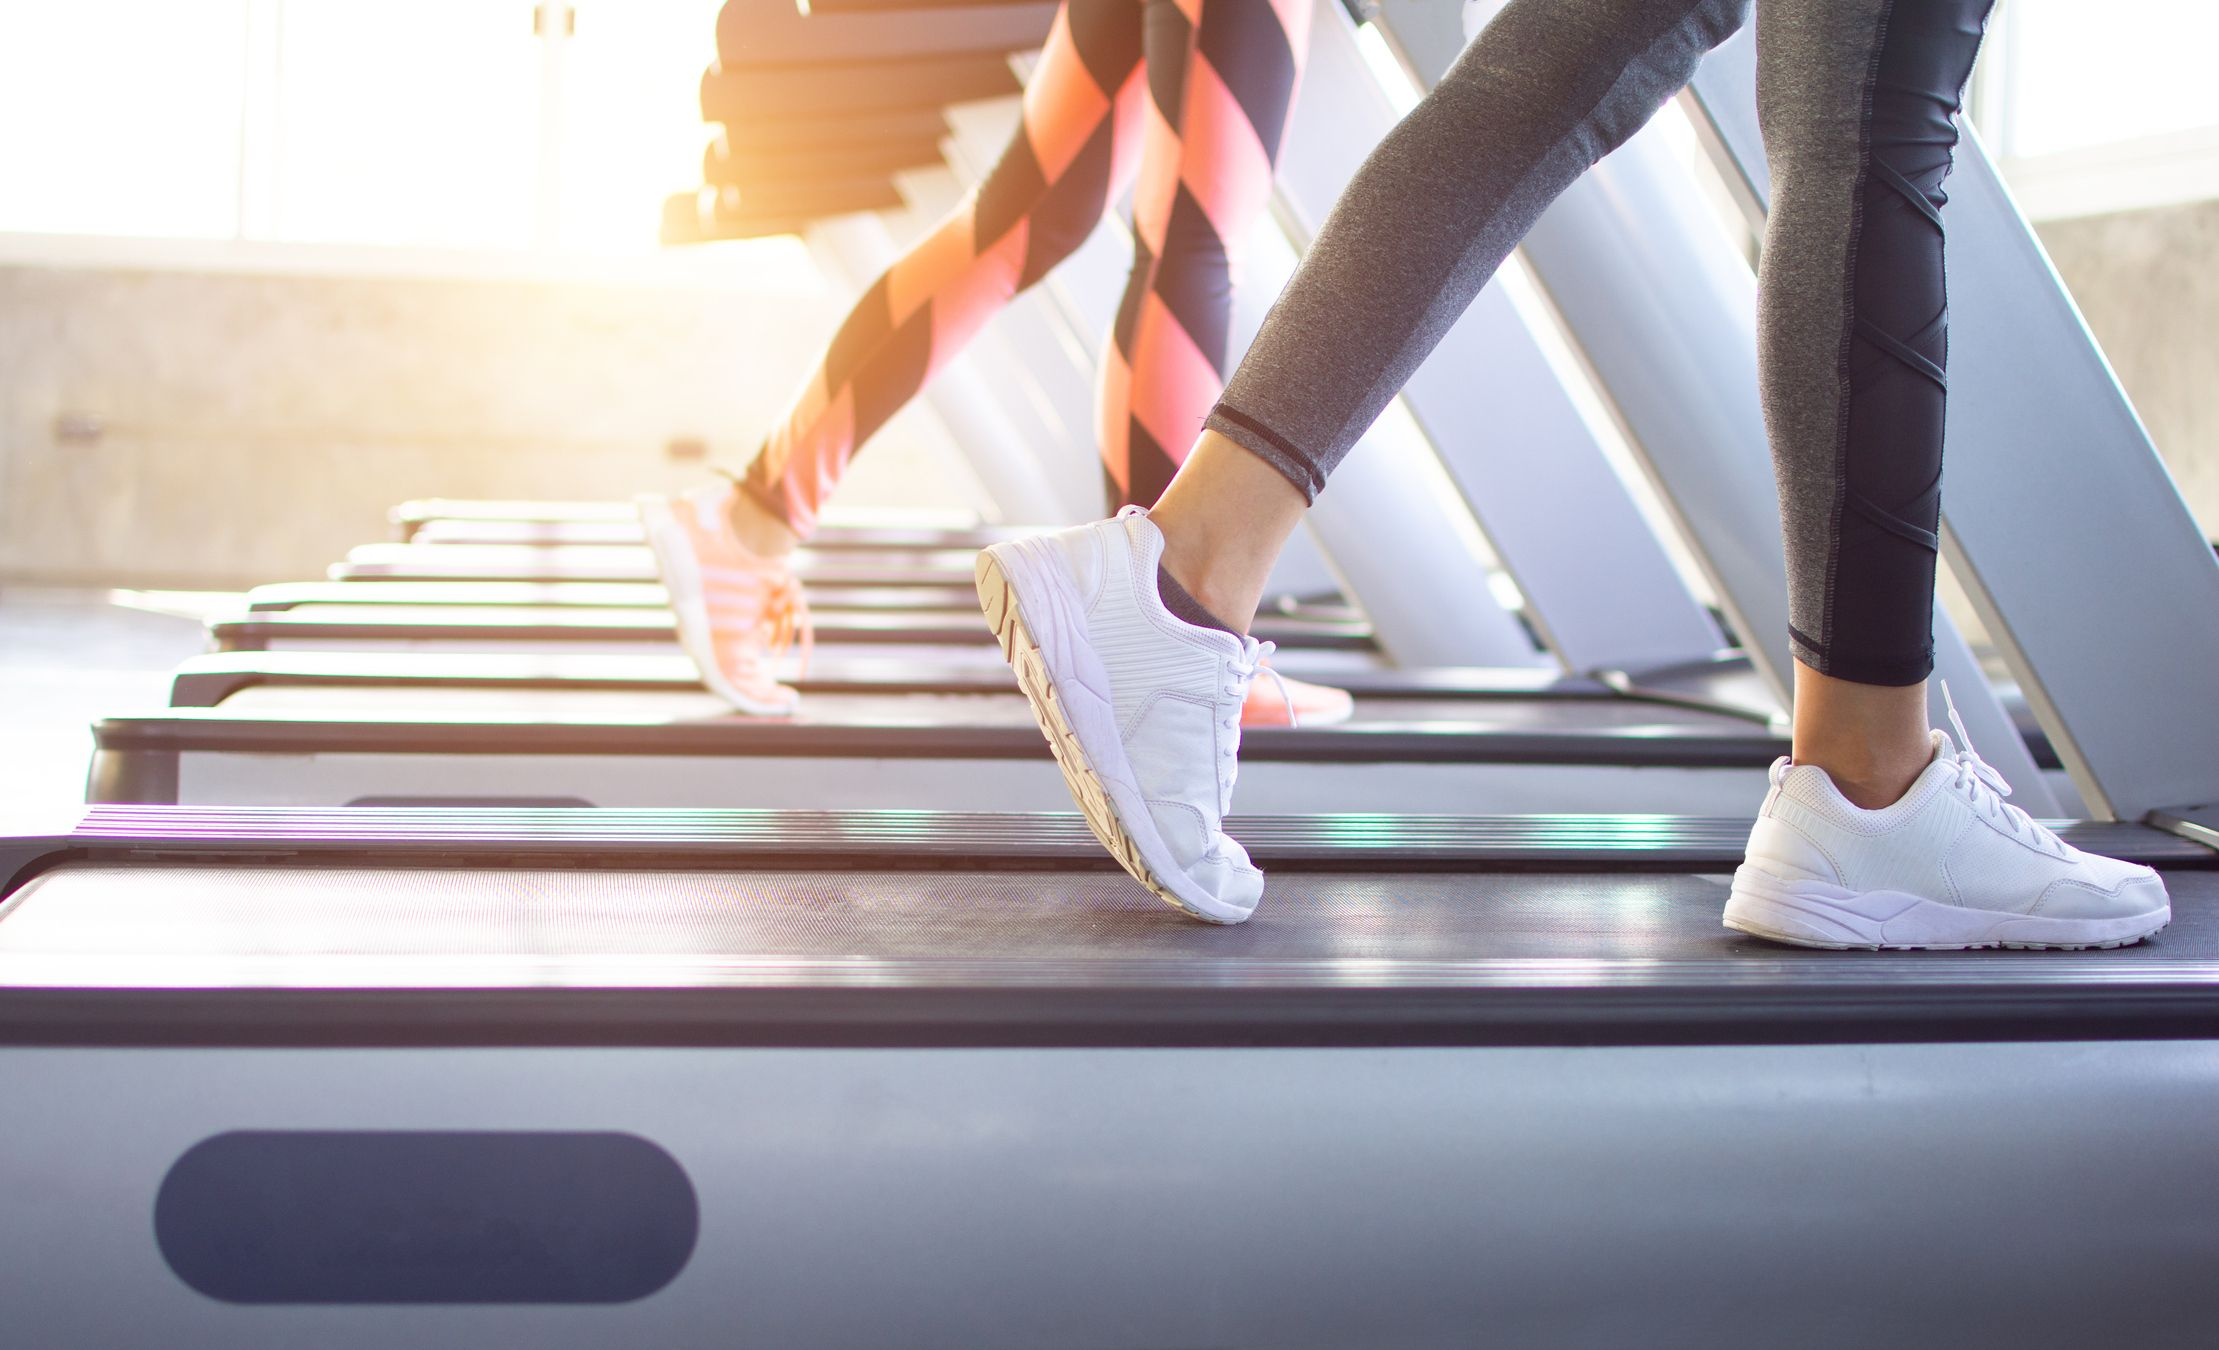 The challenging treadmill workout you can do in 10 minutes